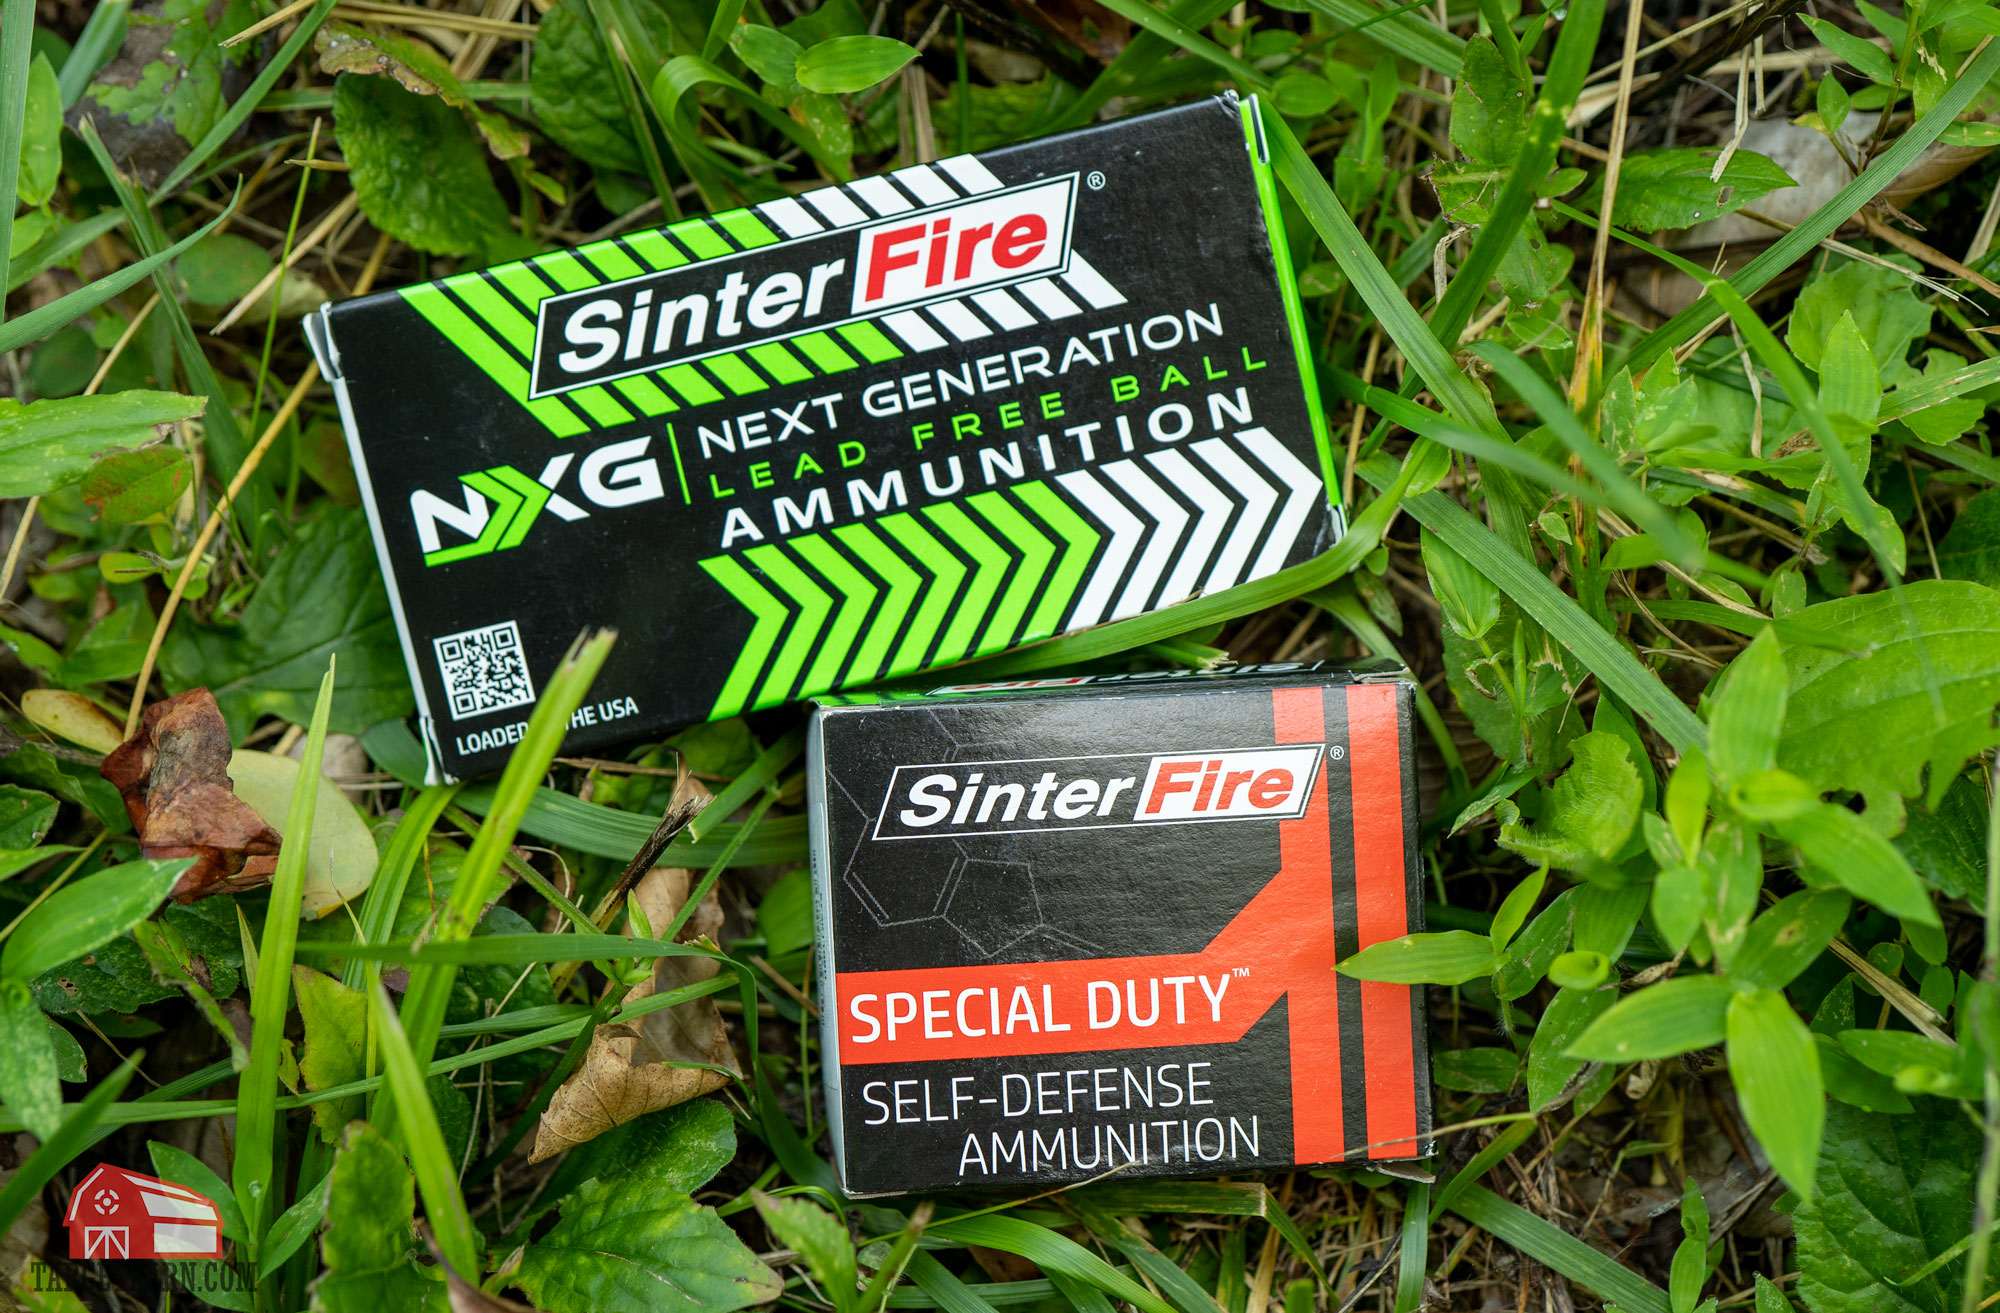 sinterfire frangible training ammo and sinterfire special duty frangible self defense ammo